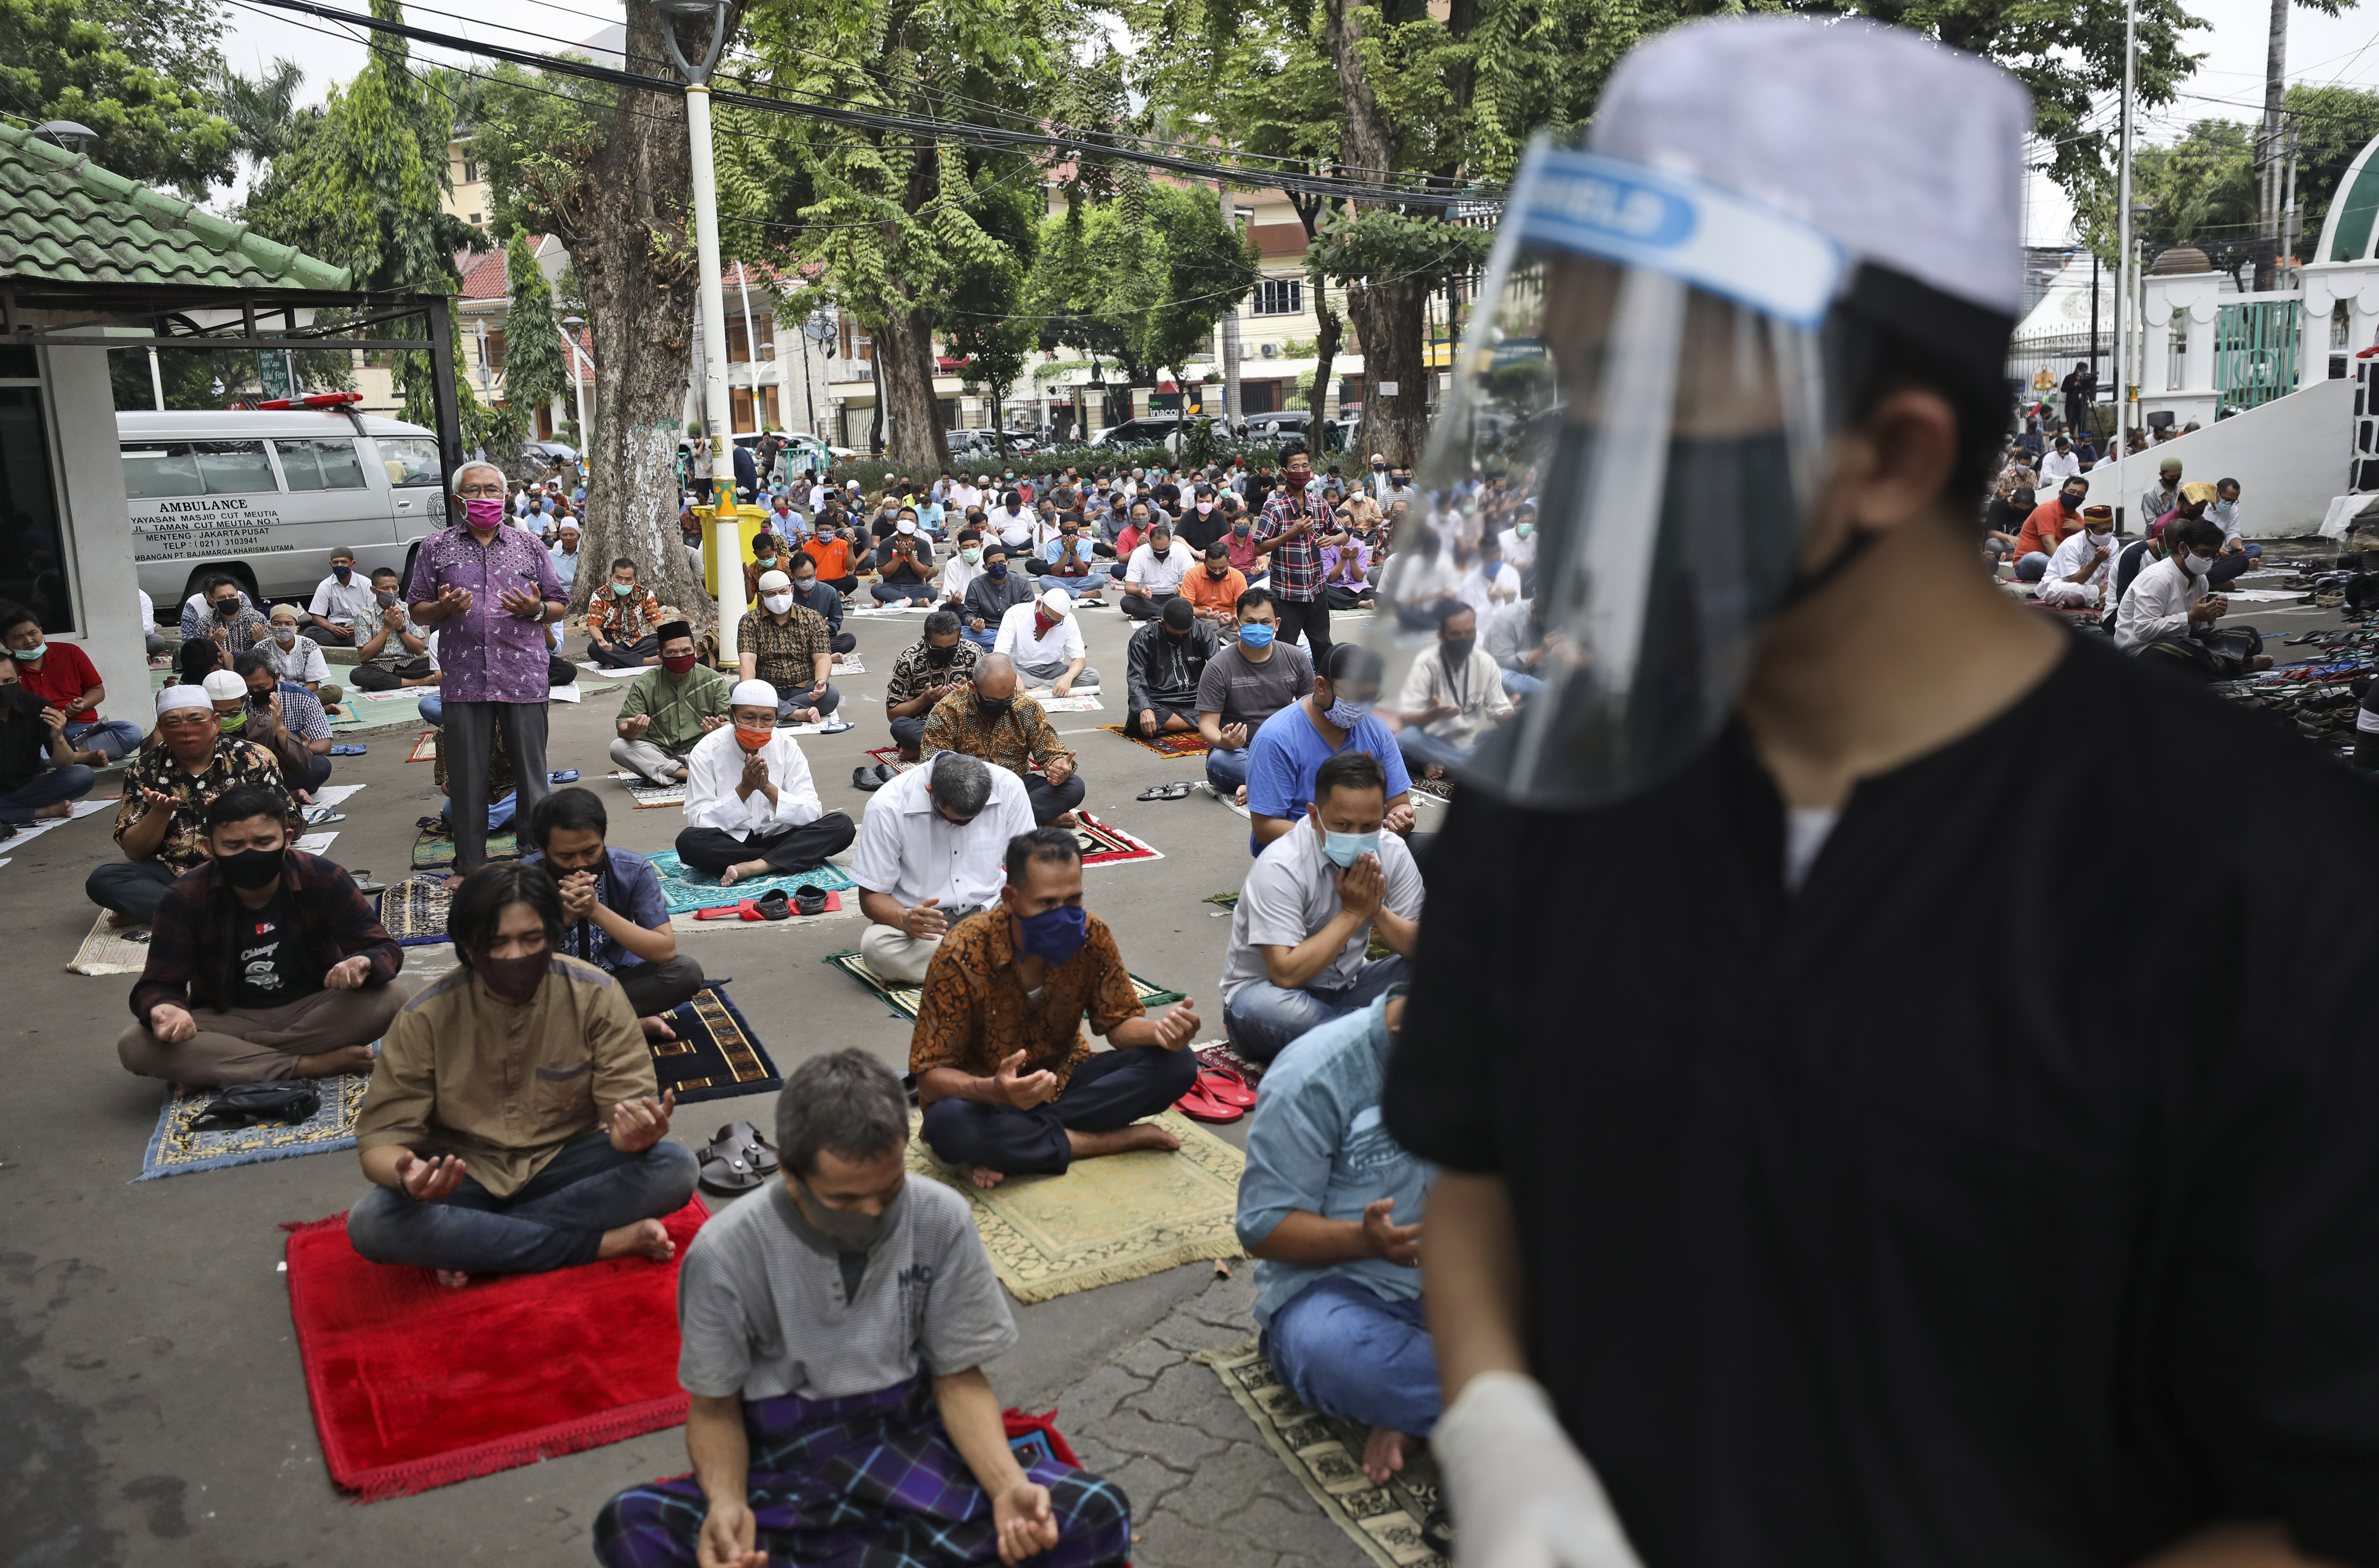 A mosque official in protective gear tasked to take the temperature readings of arriving worshippers, waits at the gate of the Cut Meutia Mosque during a Friday prayer in Jakarta, Indonesia, Friday, June 5, 2020. Muslims in Indonesia's capital held their first communal Friday prayers as mosques closed by the coronavirus outbreak for nine weeks reopened at half capacity. (AP Photo/Dita Alangkara)